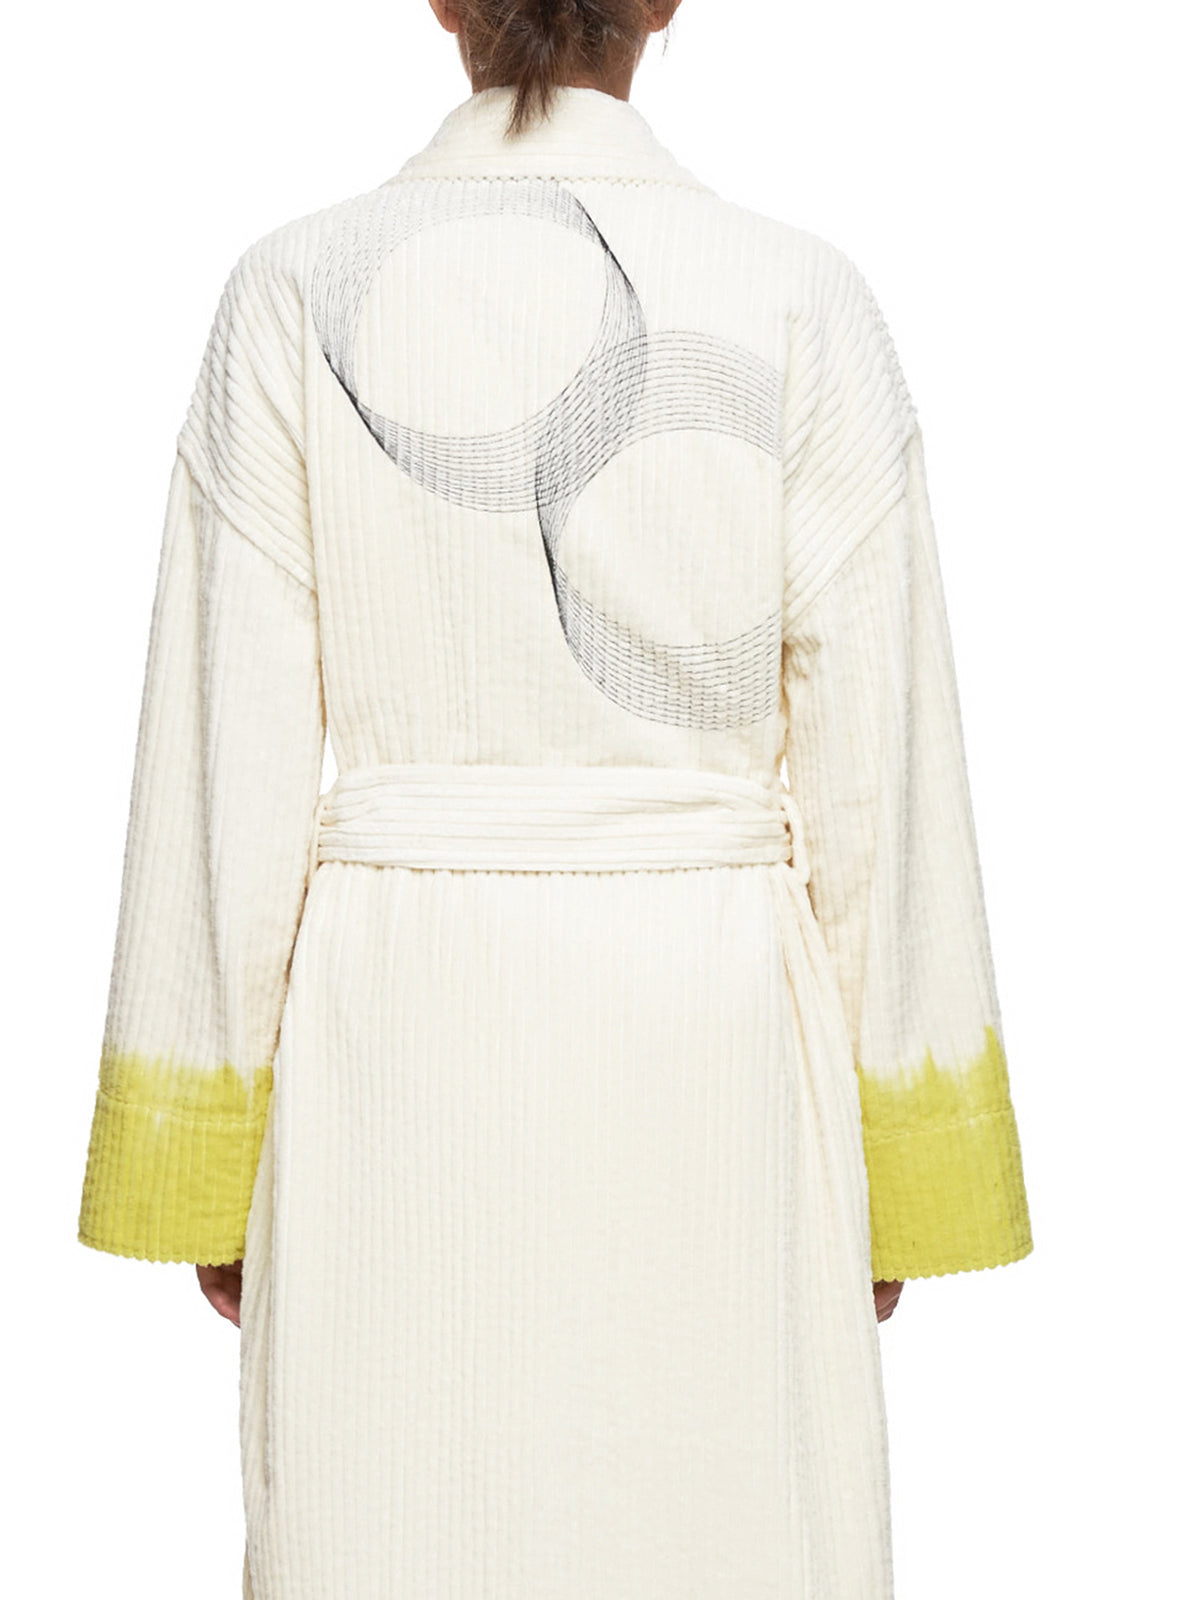 Embroidered Robe (12-BUM-D-WHITE-YELLOW)